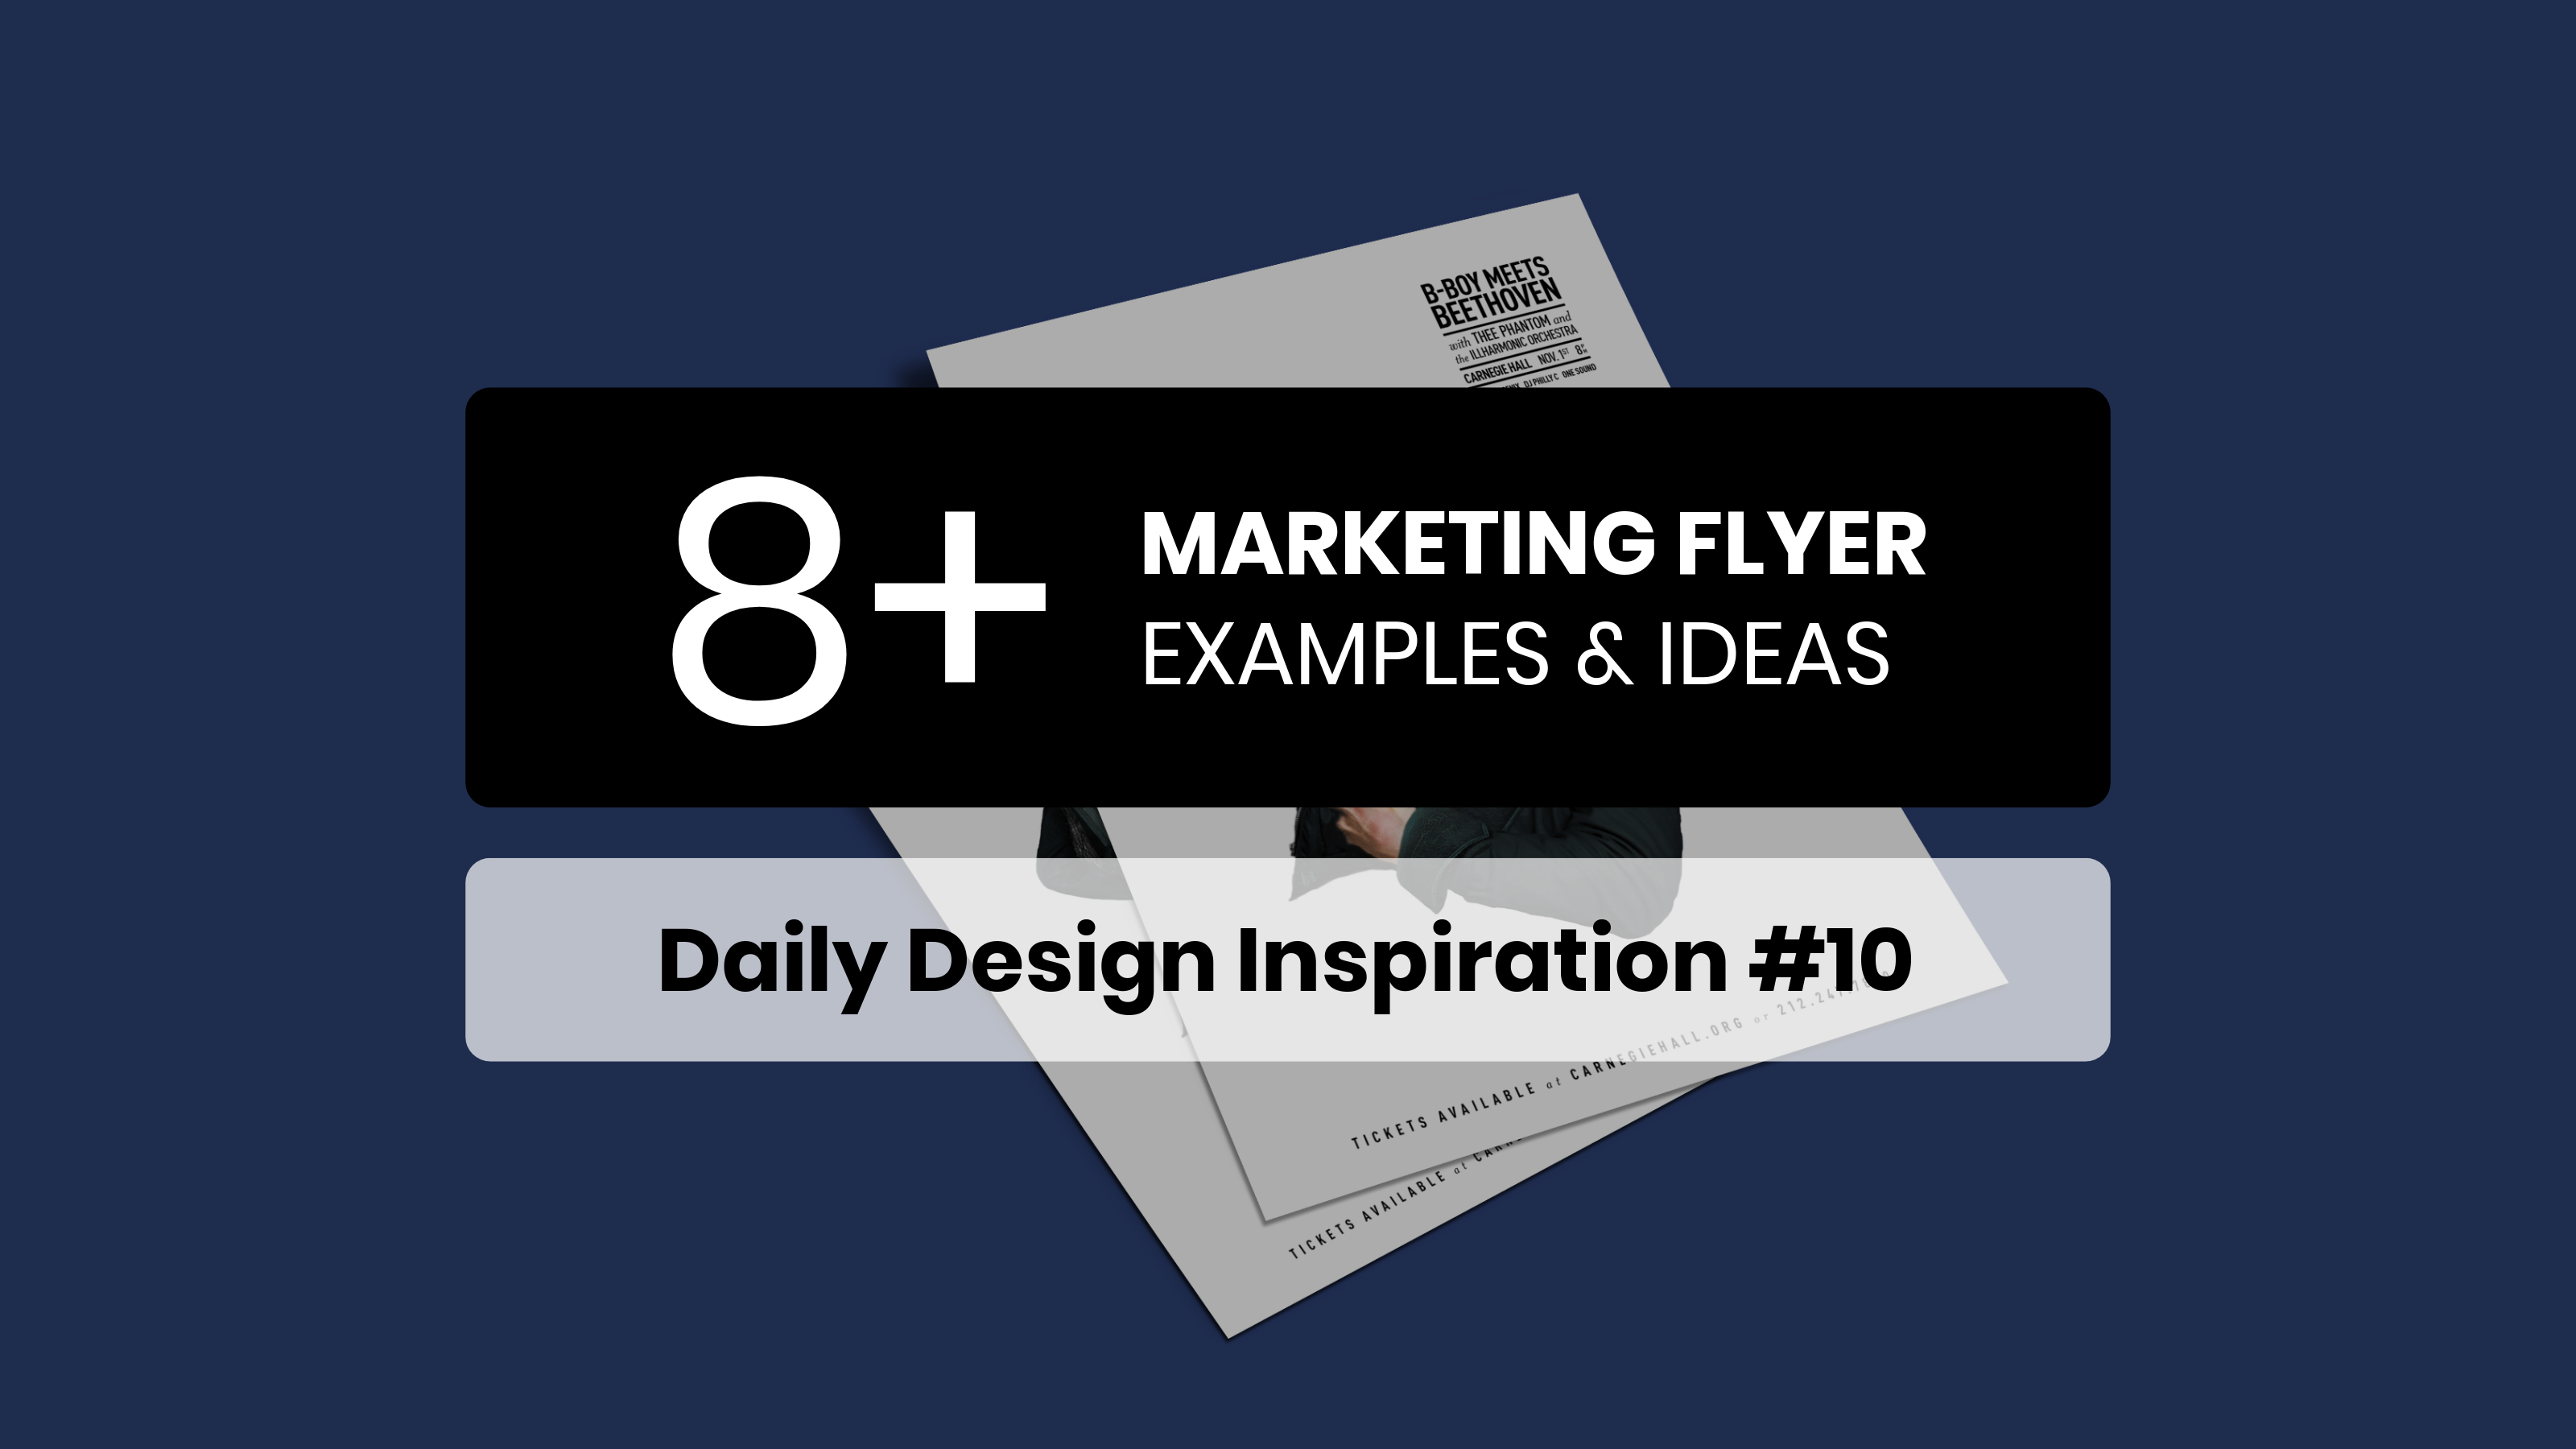 8+ Marketing Flyer Inspiration Examples & Templates – Daily Design Inspiration 10